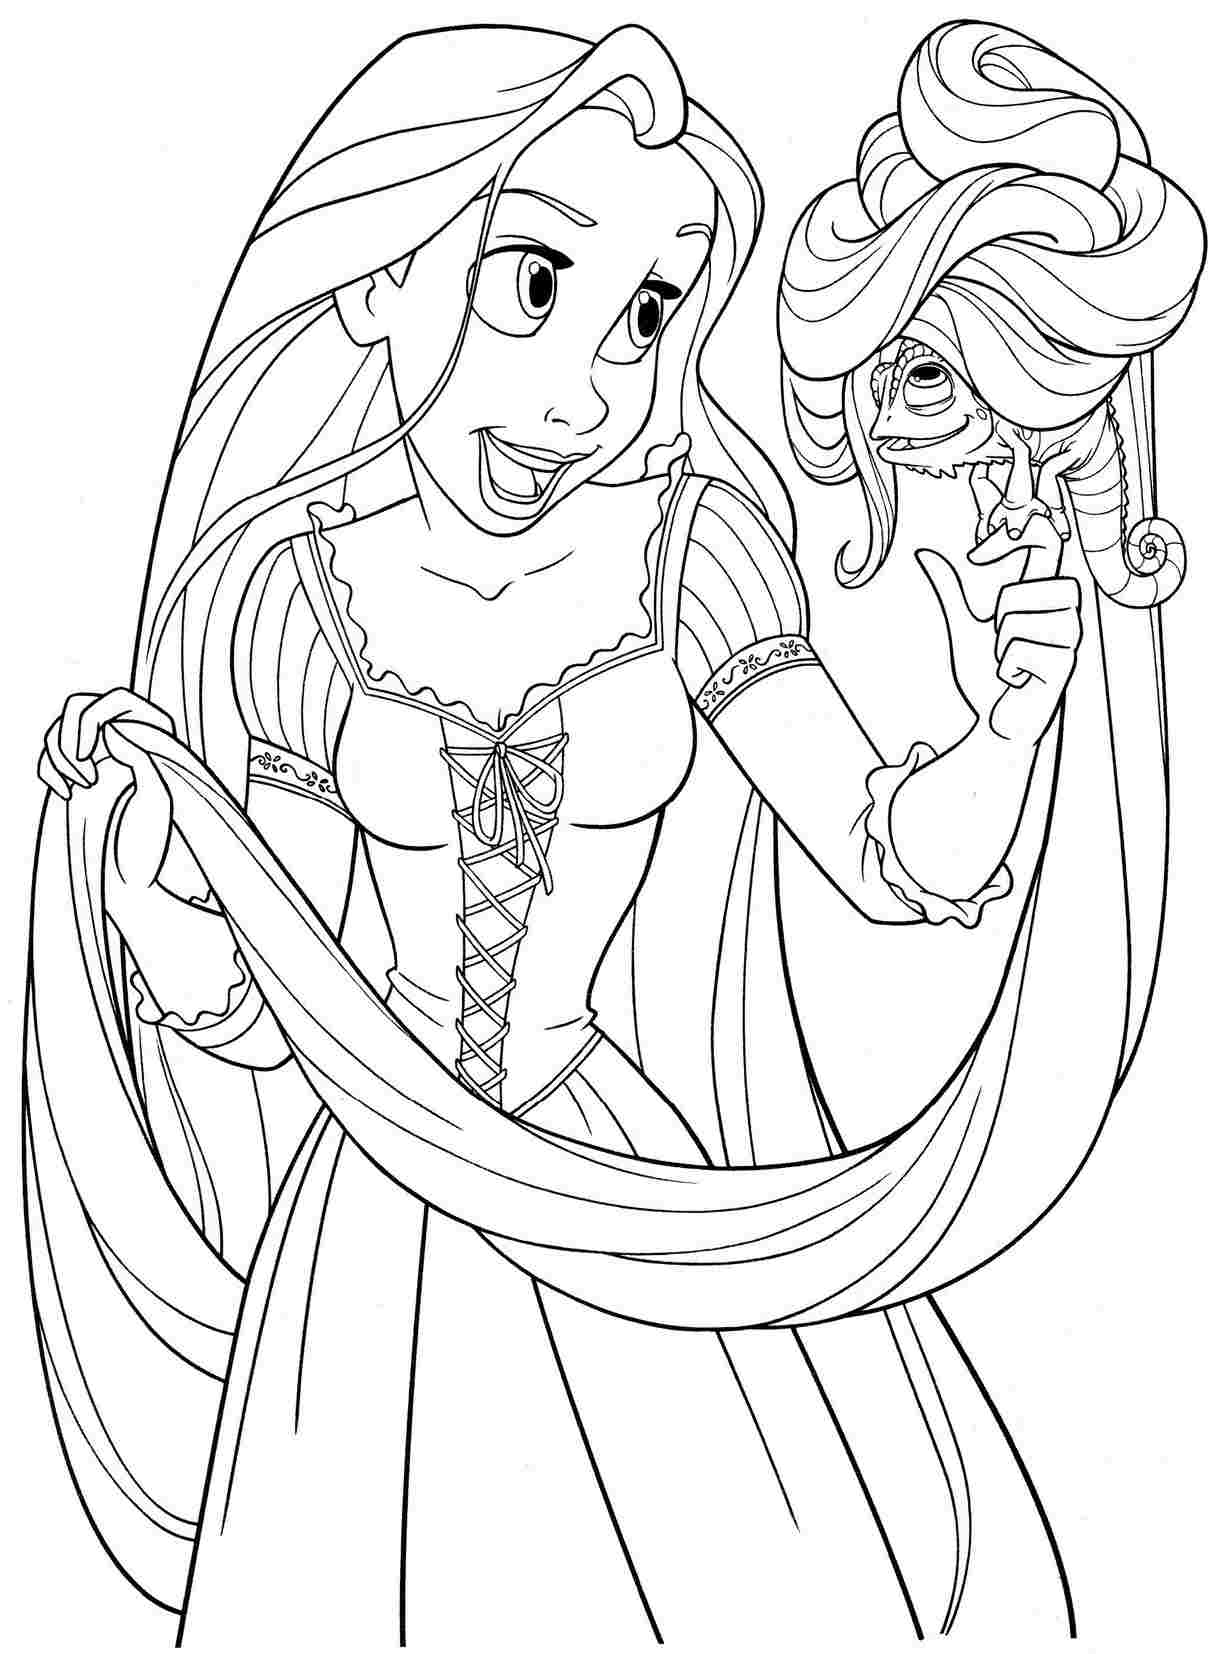 rapunzel images for coloring 170 free tangled coloring pages feb 2020 rapunzel images coloring for rapunzel